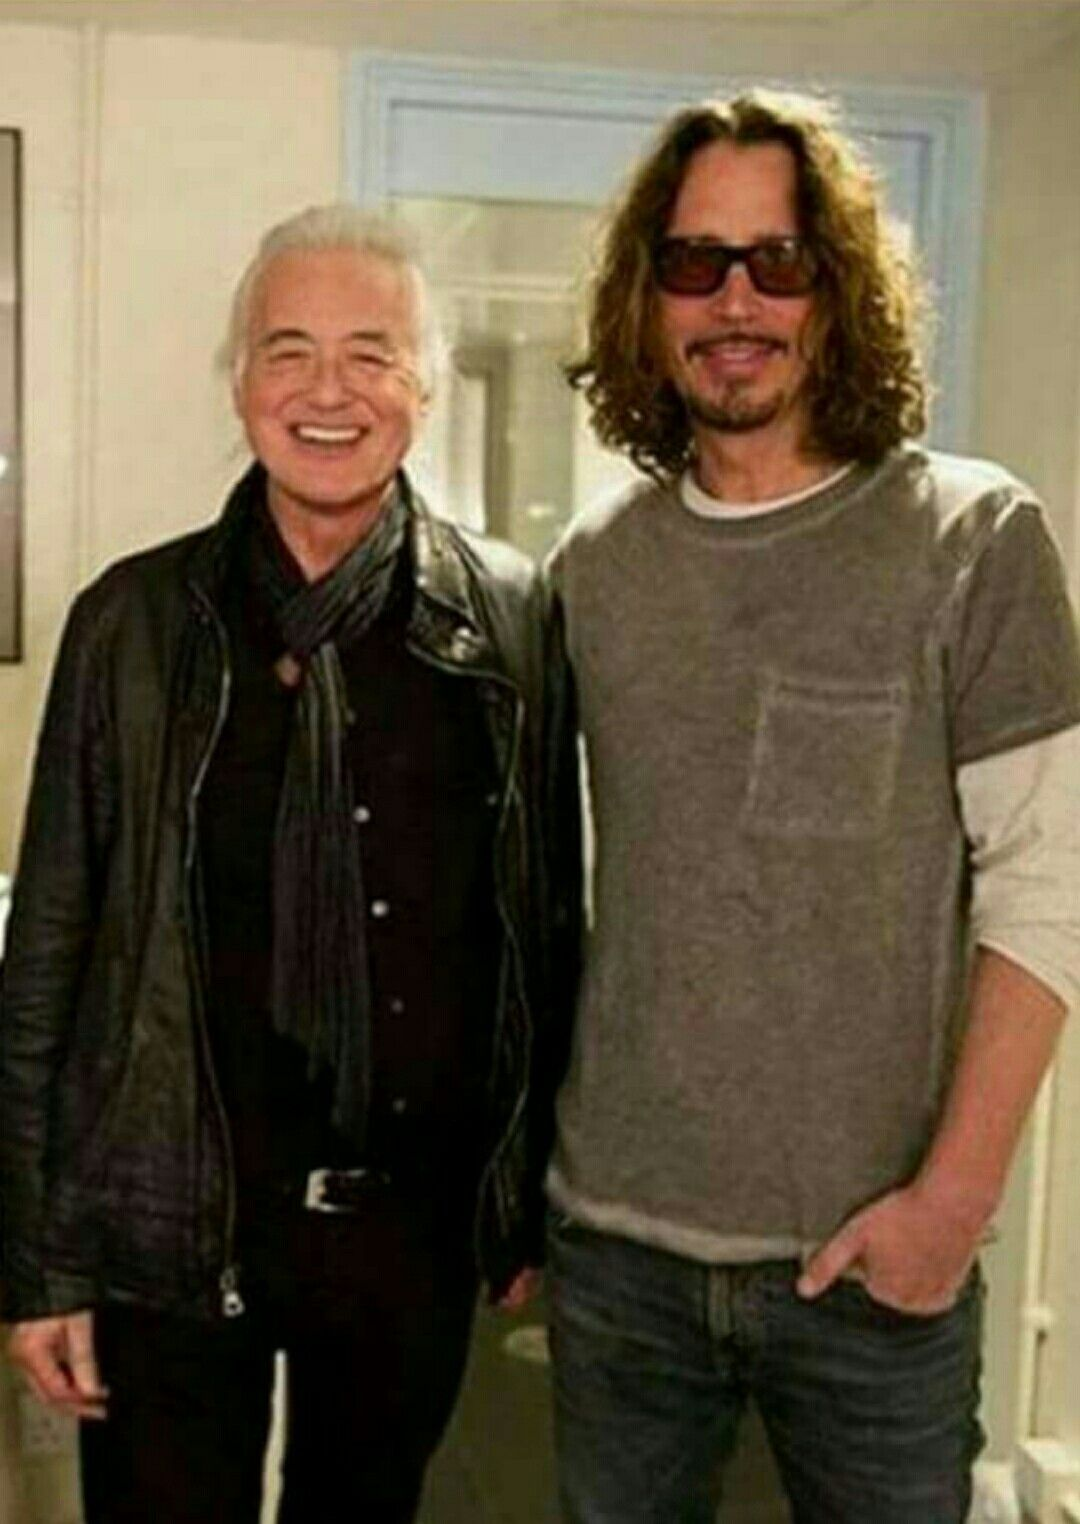 A visit with Jimmy Page in 2019 Chris cornell, Rock